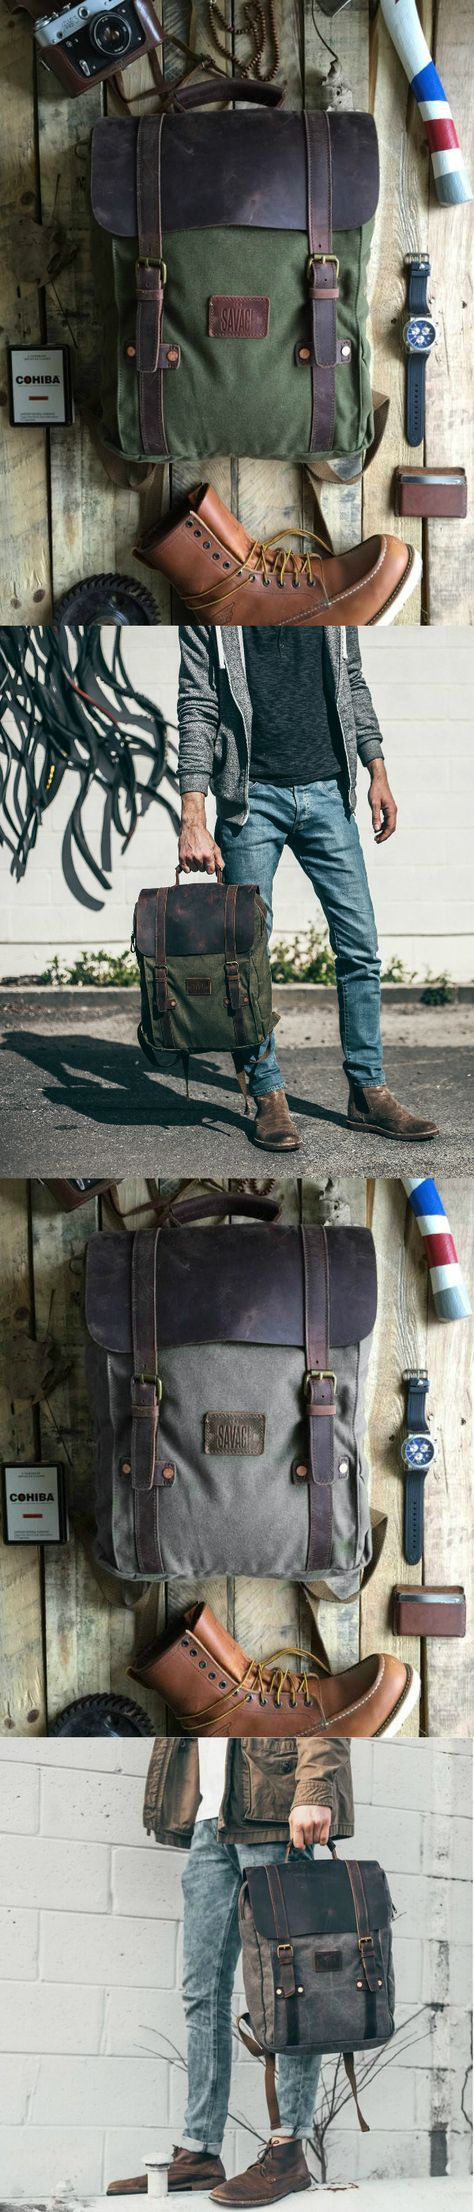 "Introducing, ""Leo"" our handcrafted backpack/rucksack that is skillfully created from the best materials around. Whether you are vacationing to Europe, backpacking through your local national forest, o"